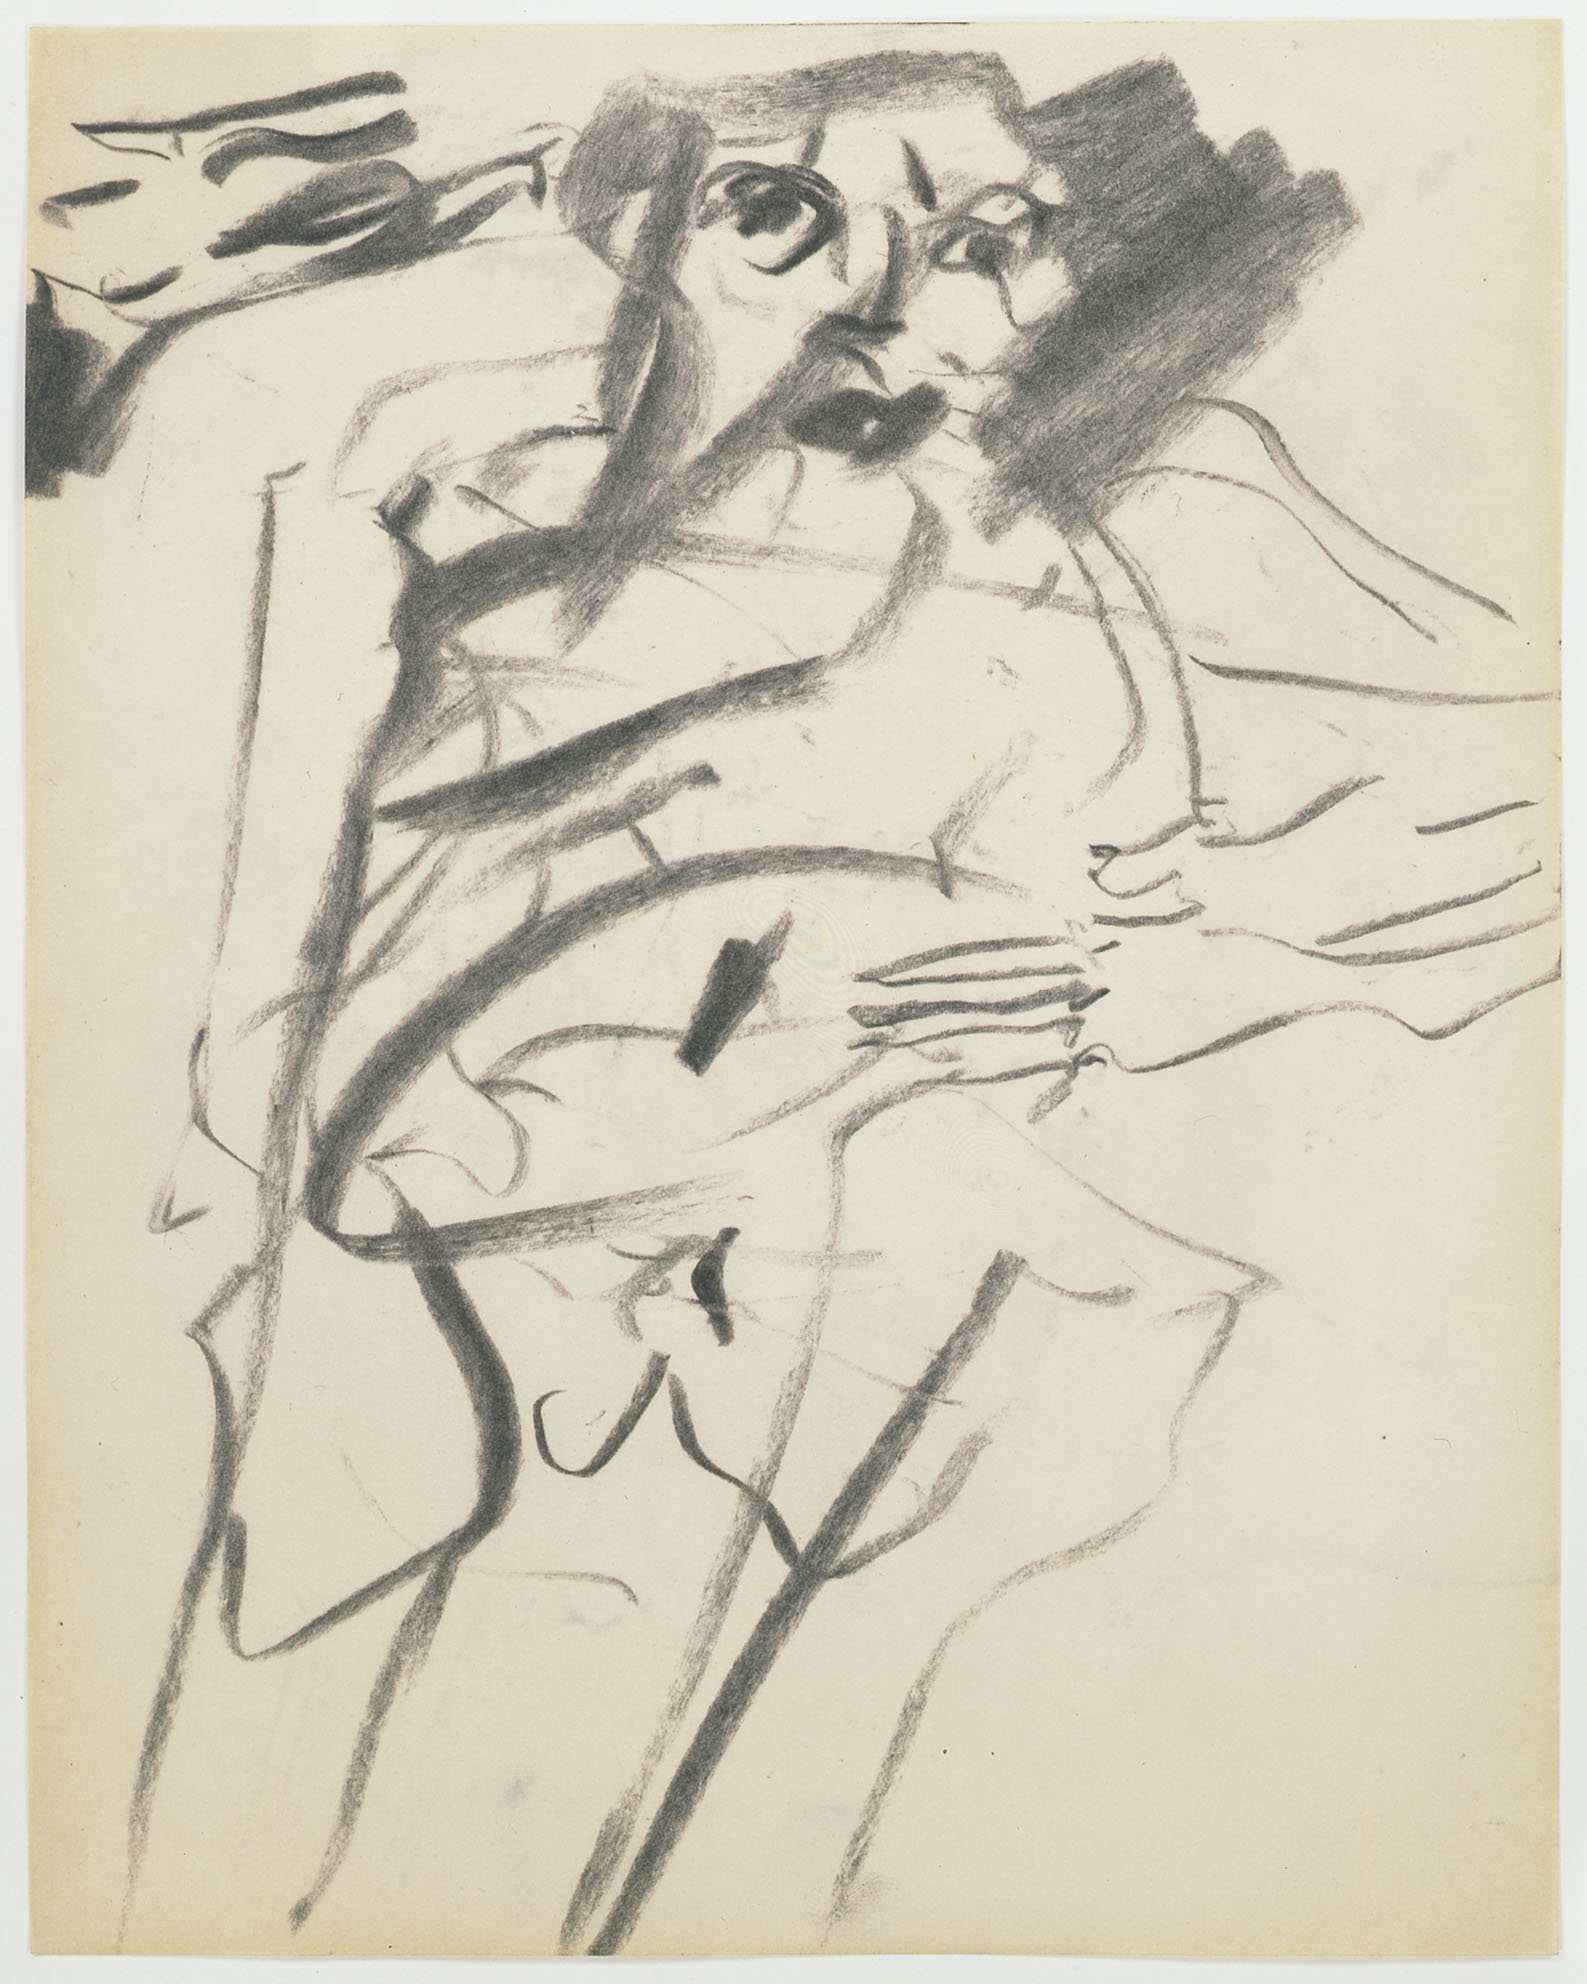 "Willem de Kooning. Untitled. 1966. Charcoal on paper, 10 x 8"" (25.4 x 20.3 cm). Gift of Jan Christiaan Braun in honor of Rudi Fuchs. © 2012 The Willem de Kooning Foundation/Artists Rights Society (ARS), New York"